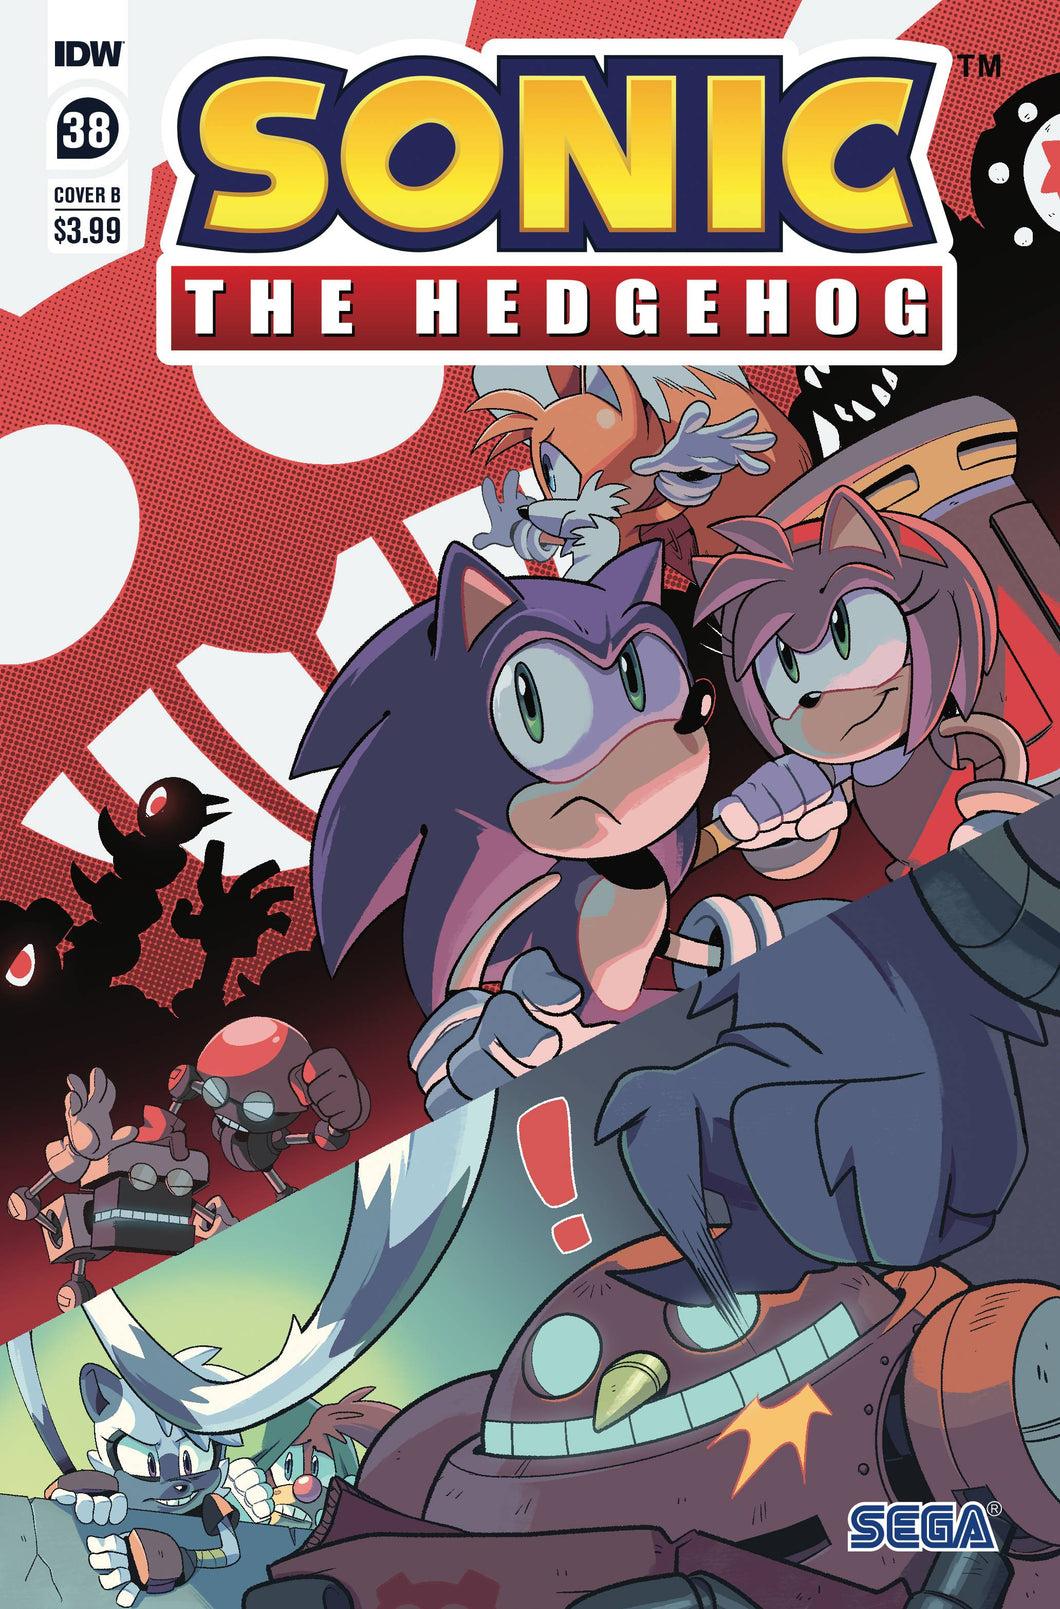 SONIC THE HEDGEHOG #38 CVR B ROTHLISBERGER